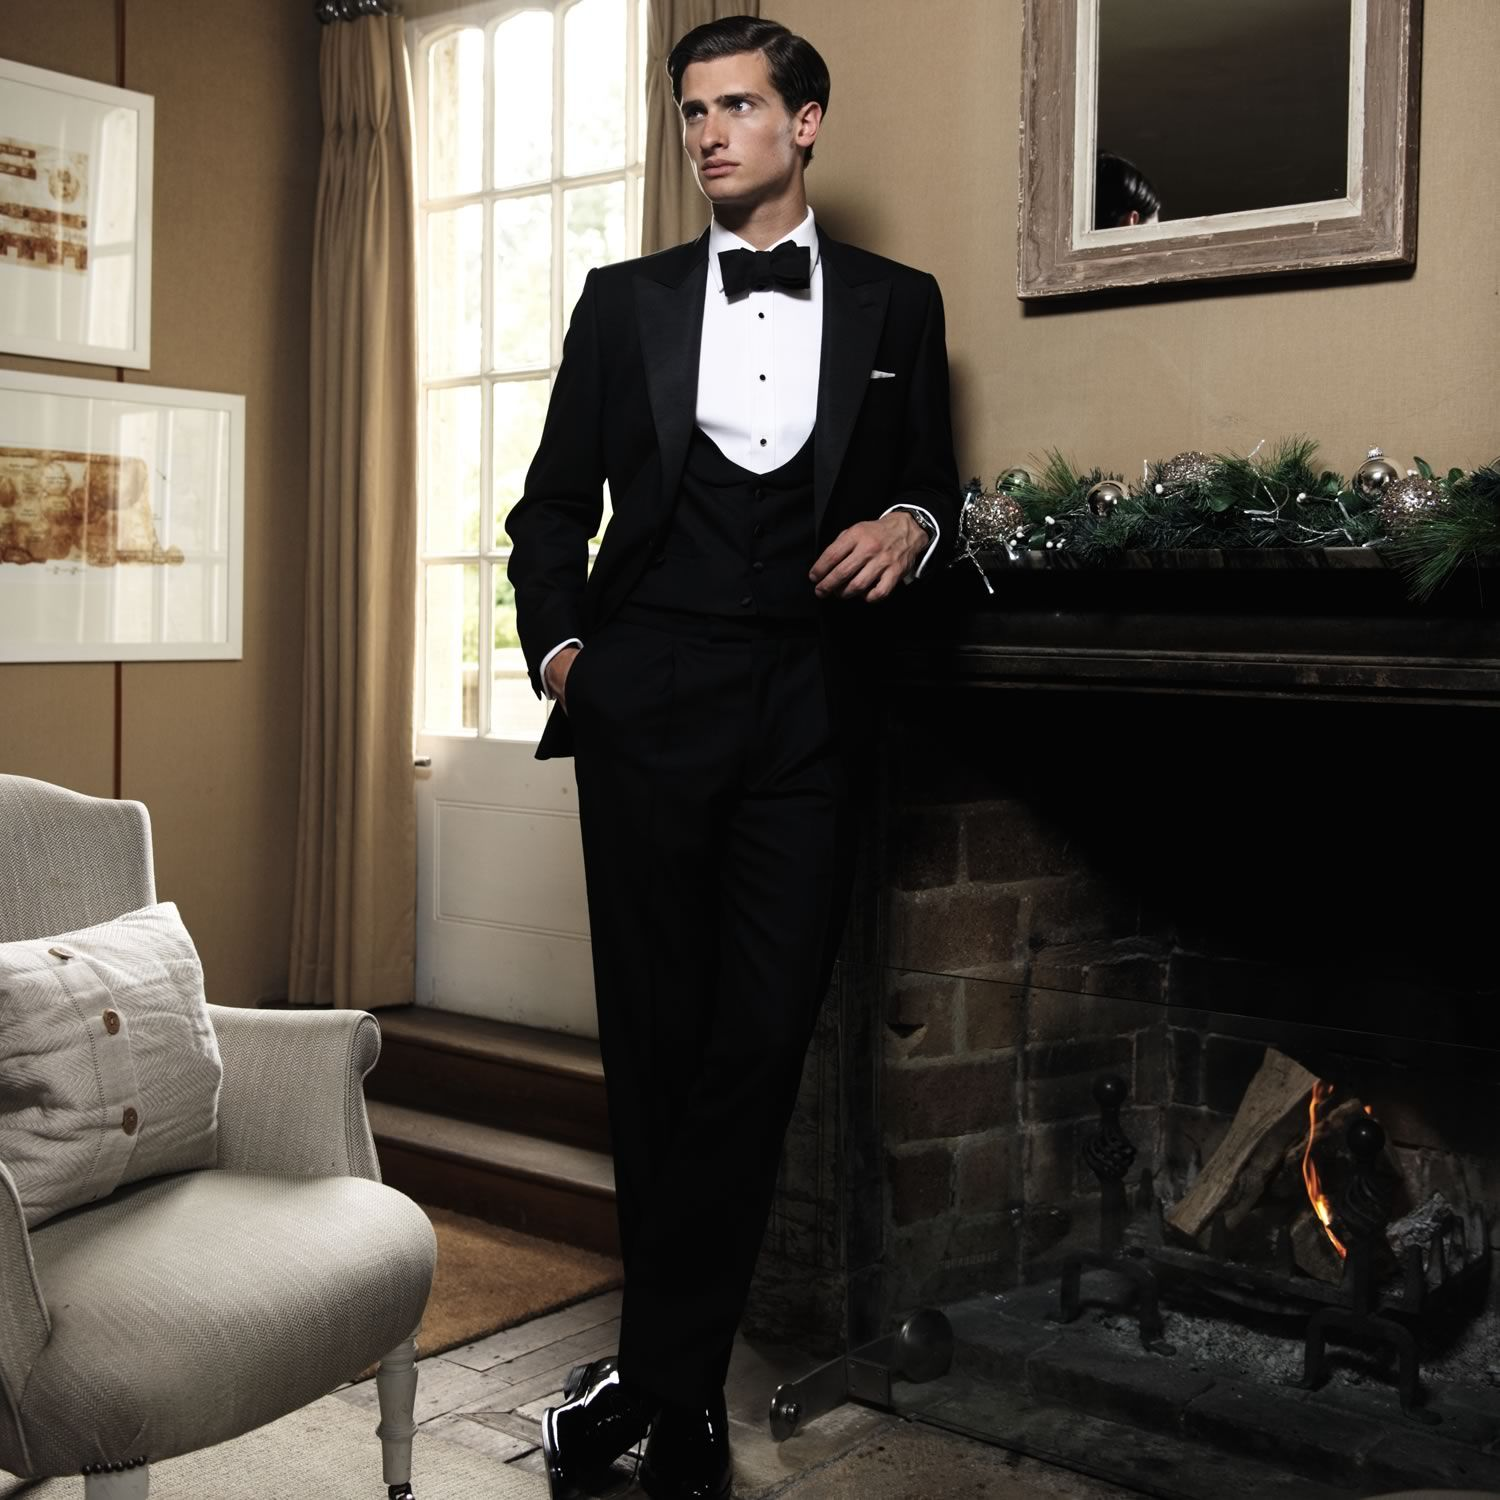 Dinner suit | Men's occasion suits from Charles Tyrwhitt ...